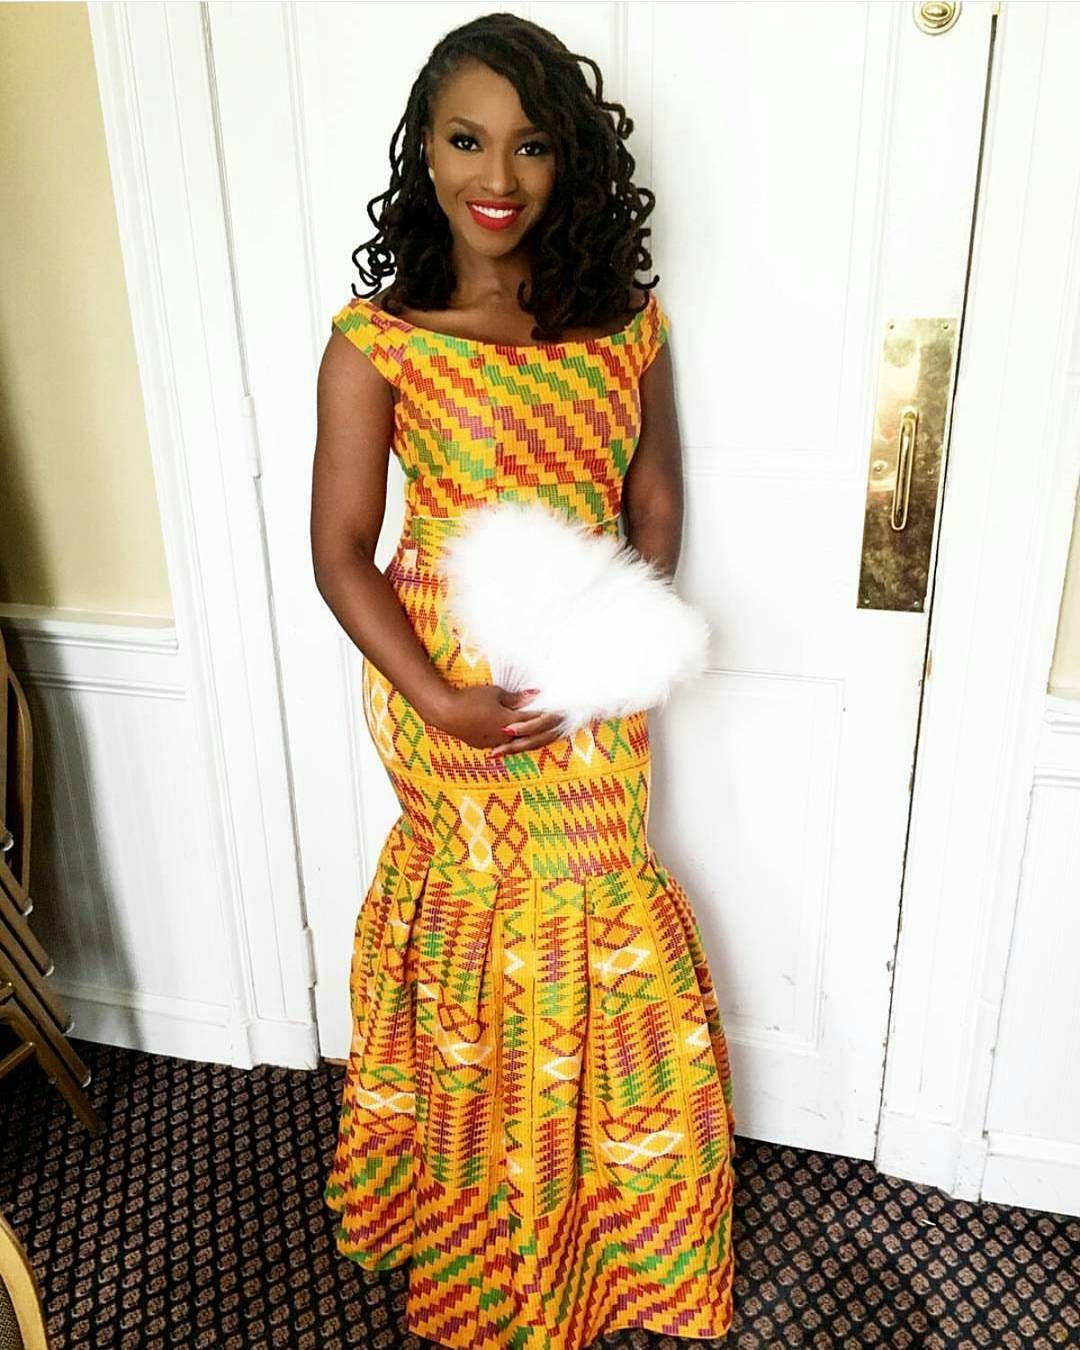 Pin By Jessi Bibi On Pagneuse Pinterest Kente Styles Africans